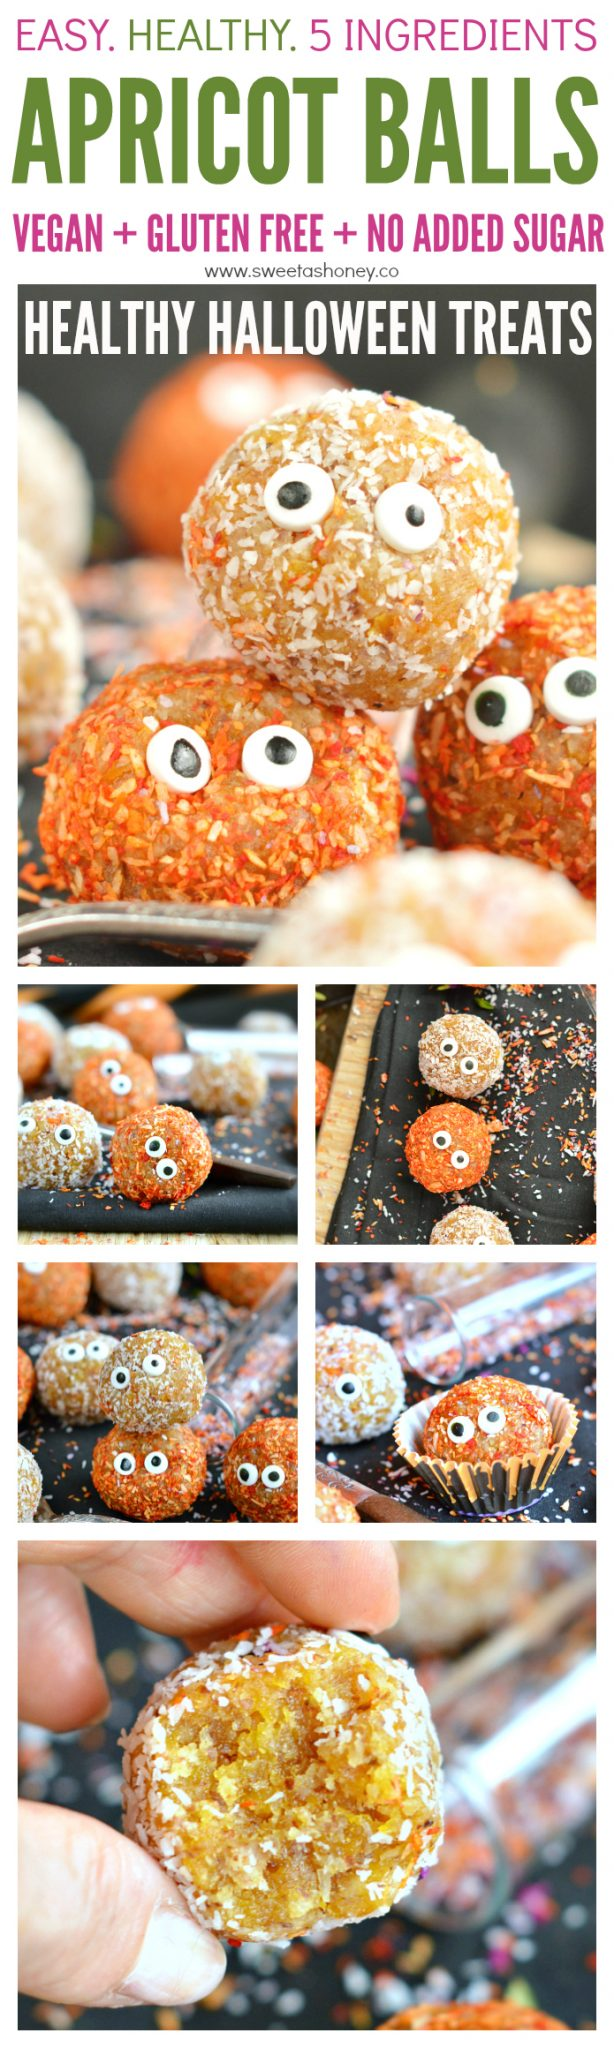 Those Apricot Balls with dried fruits and coconut makes an awesome healthy Halloween treats for kids for school or hand out. A fun and easy bliss ball recipe with a scary monster look, ready in 10 minutes in your food processor. Vegan, gluten free and dairy free.